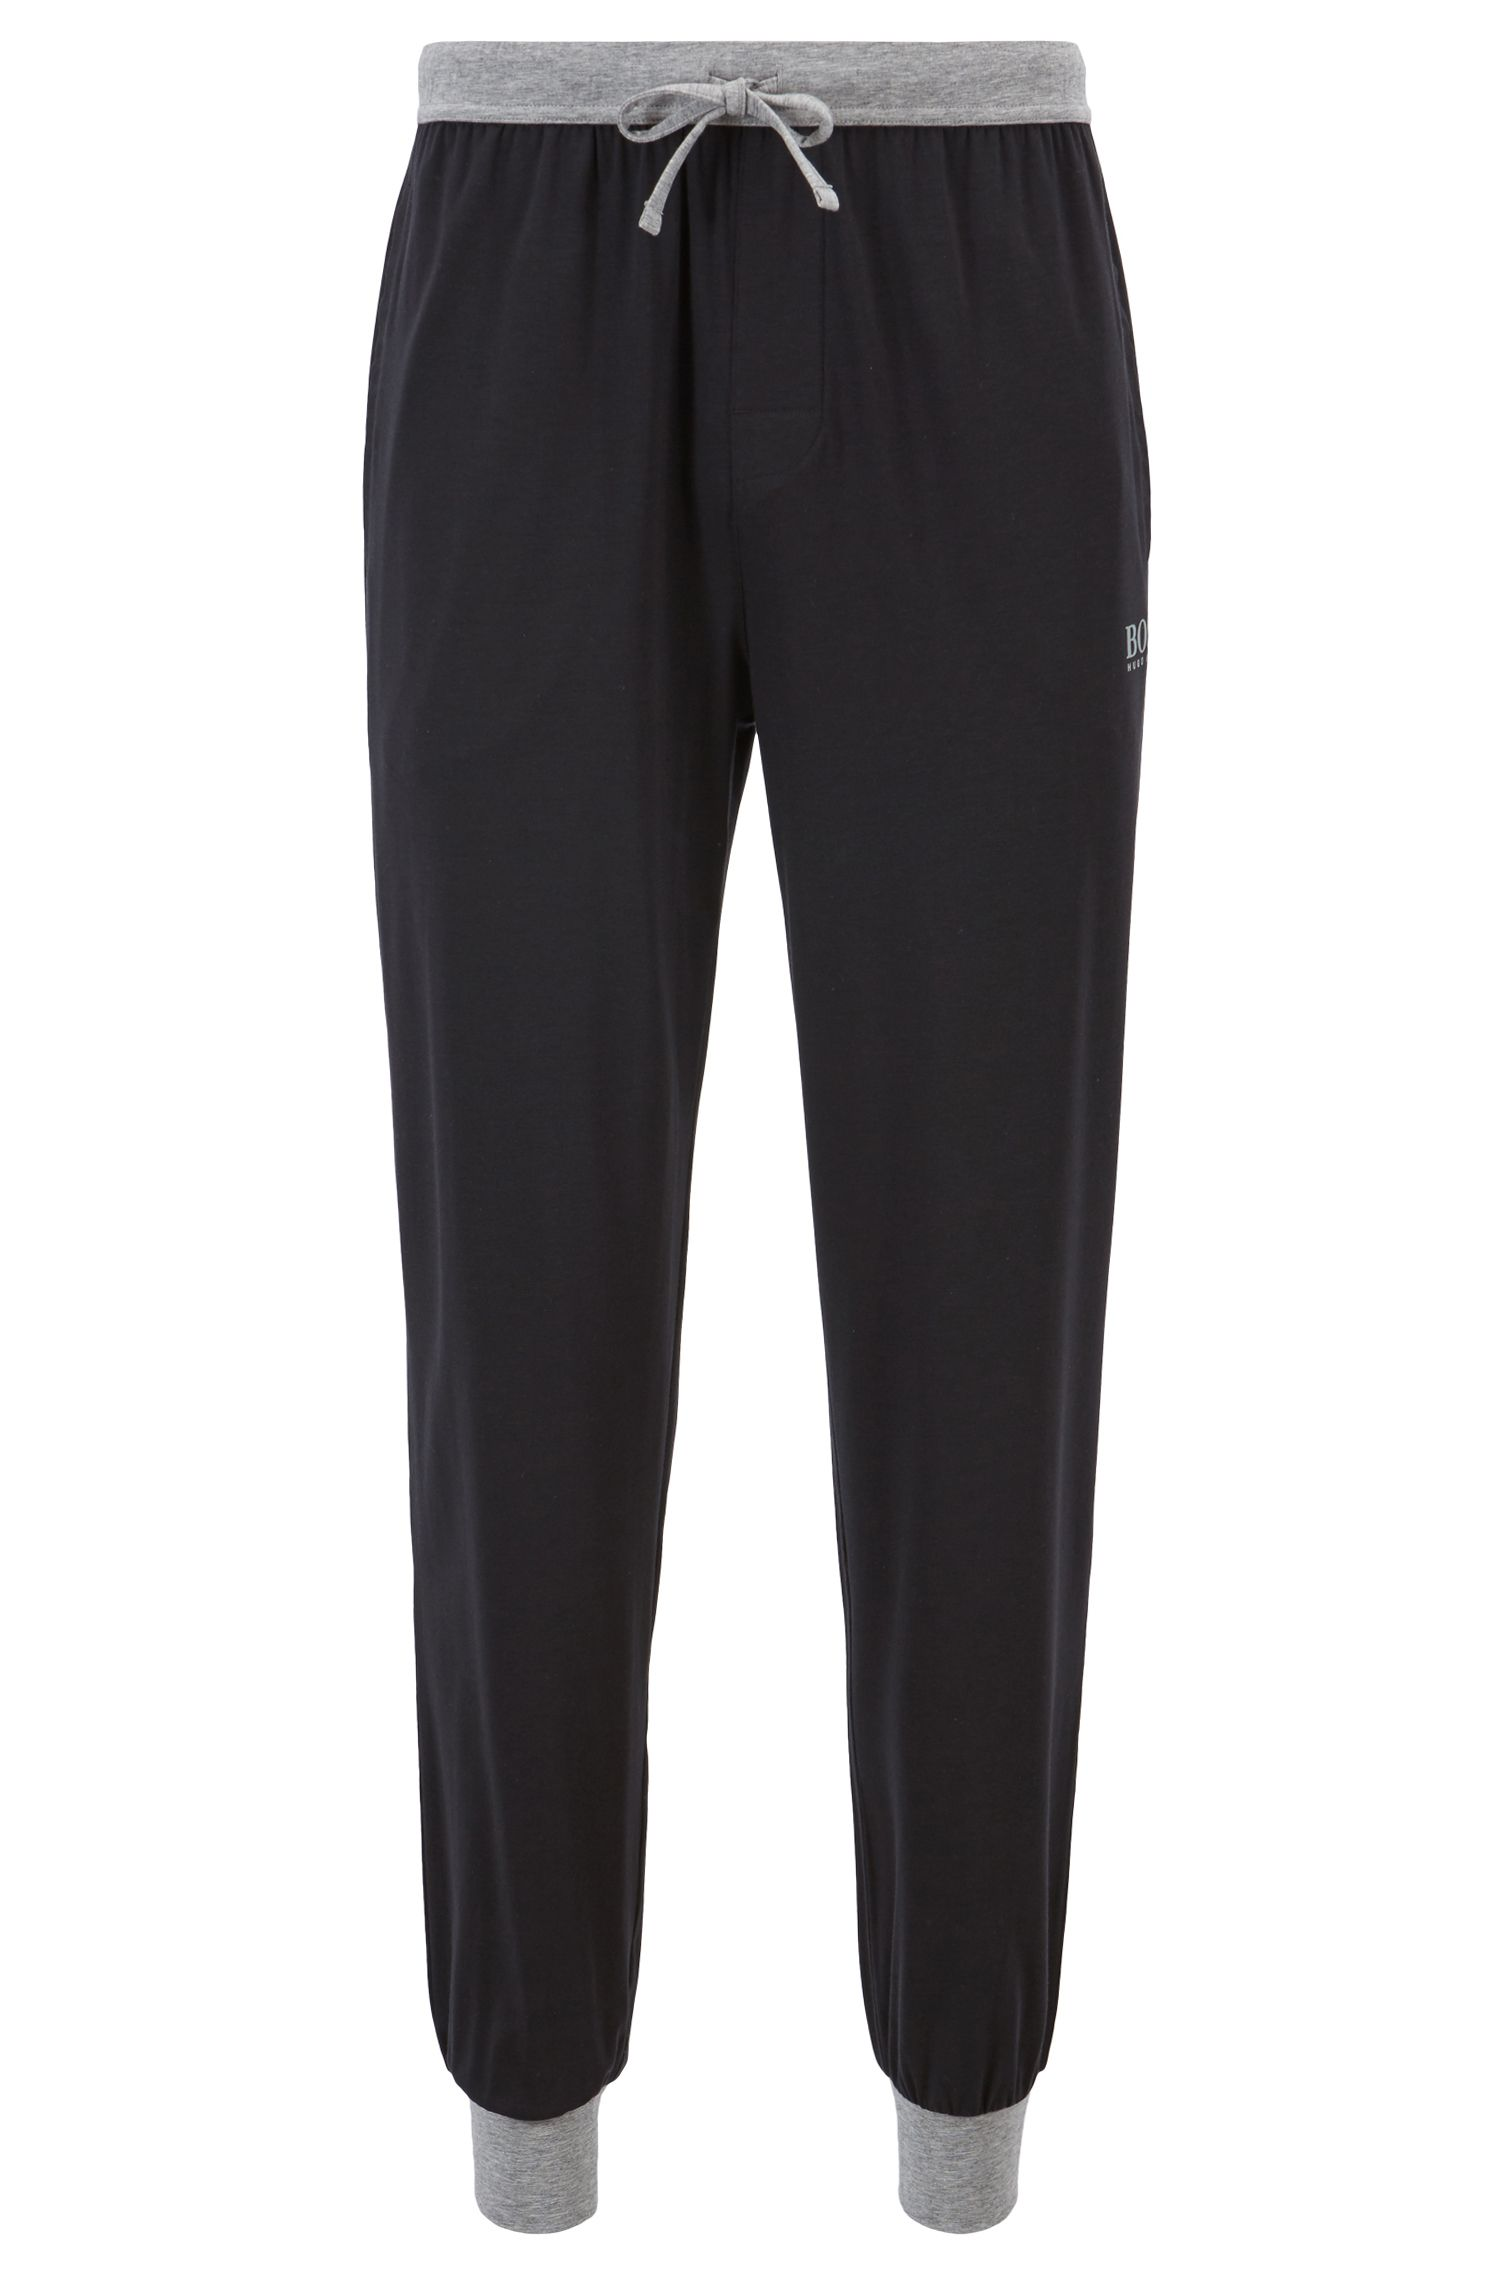 Drawstring-waist jersey pyjama bottoms with contrast details, Black